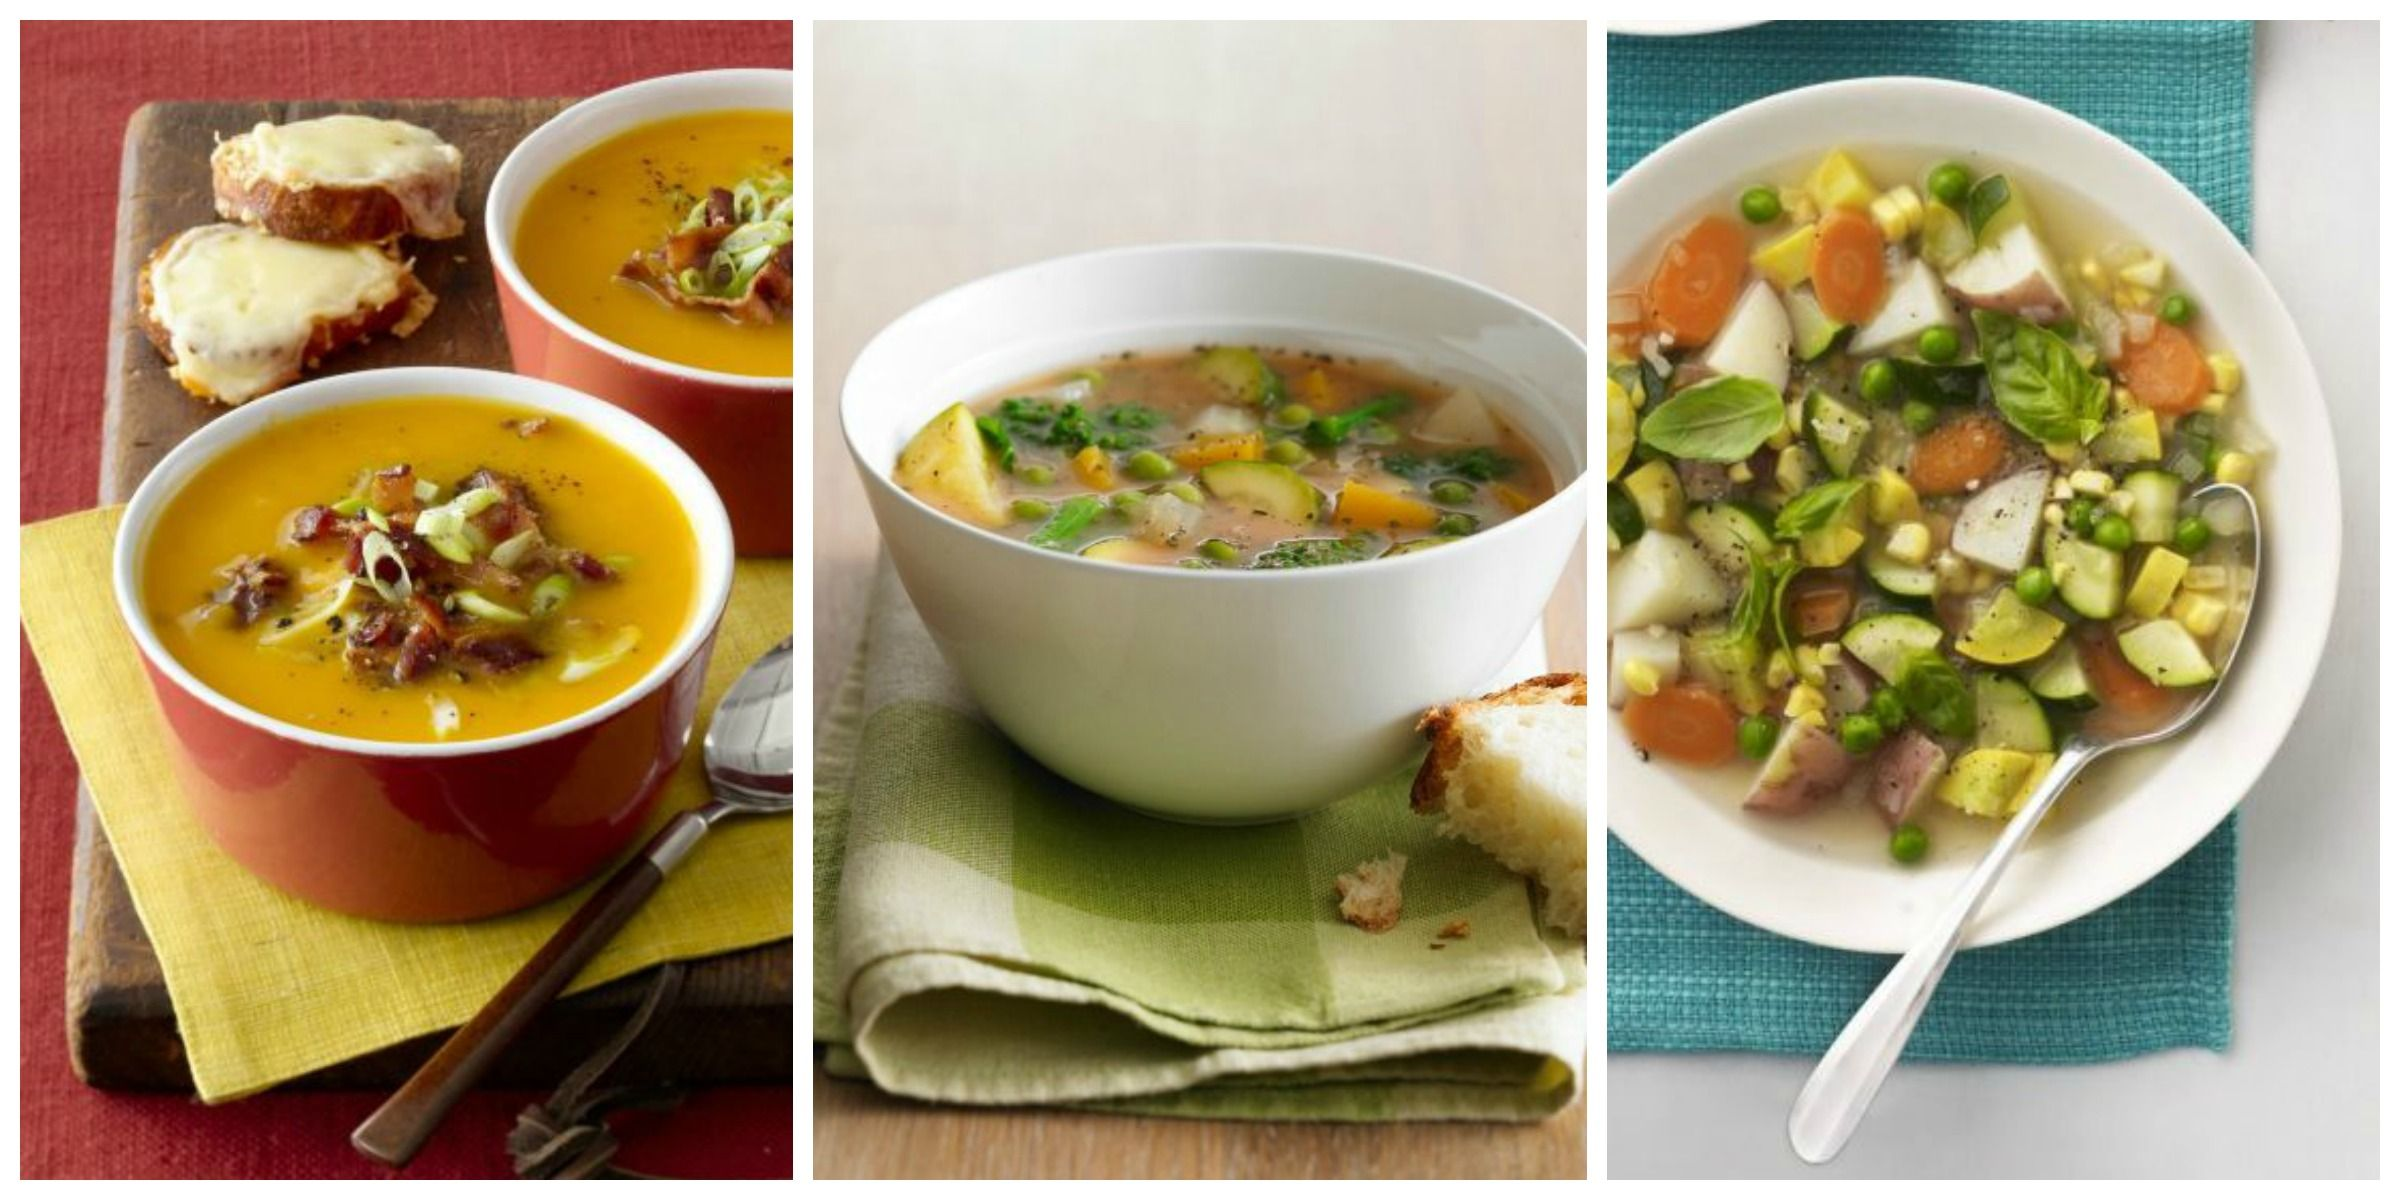 32 vegetable soup recipes healthy vegetable soups forumfinder Gallery